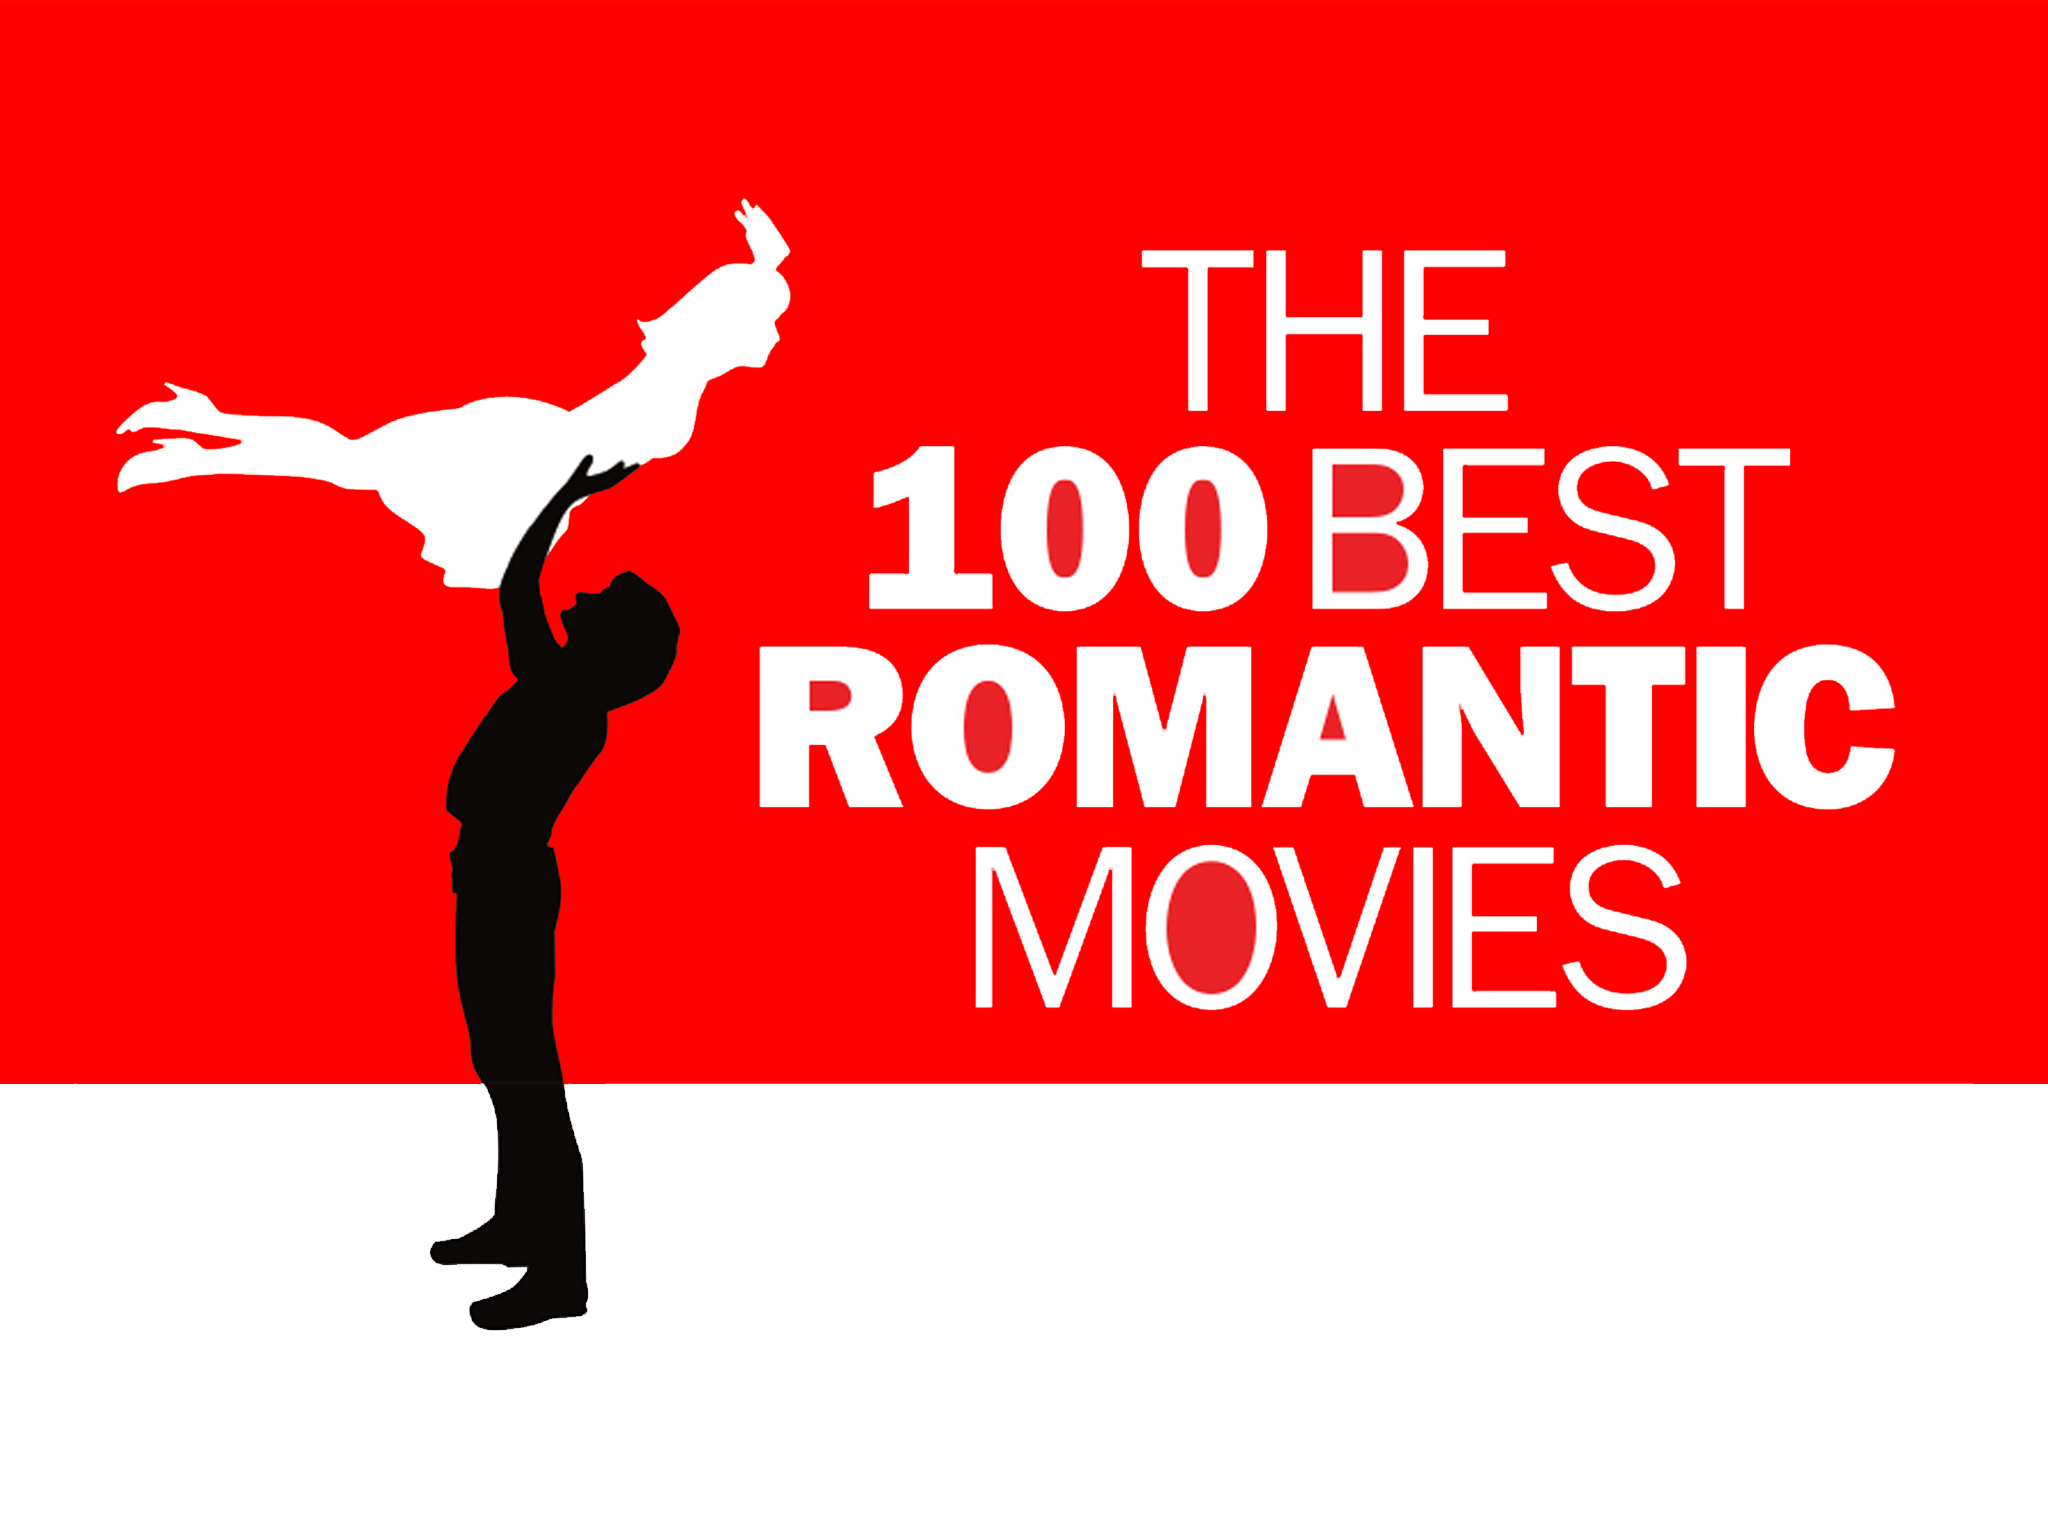 The 100 best romantic movies logo, 2048x1536